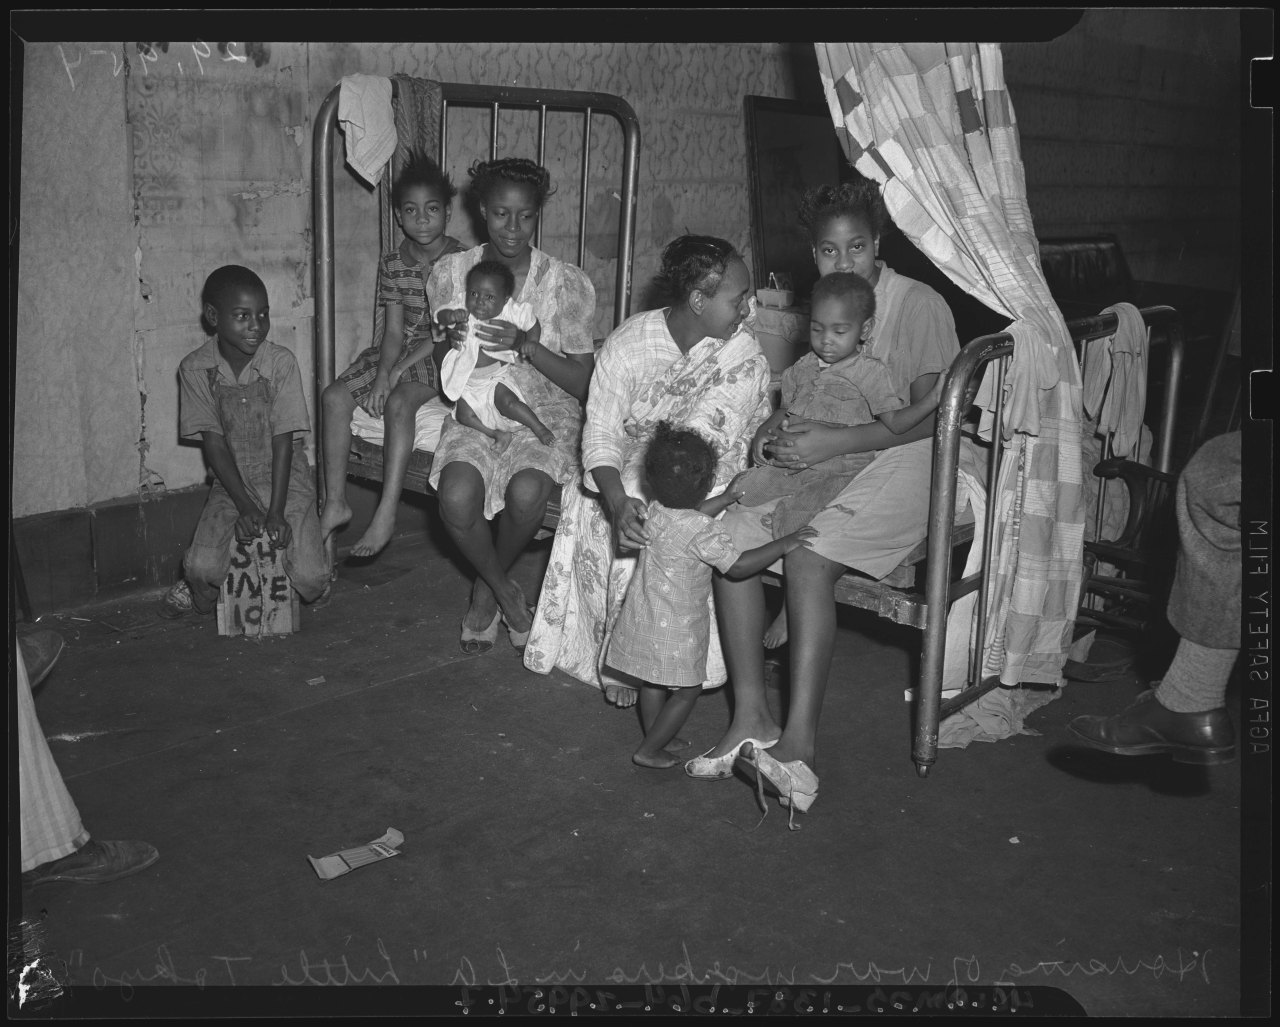 Residents of overcrowded Bronzeville  via